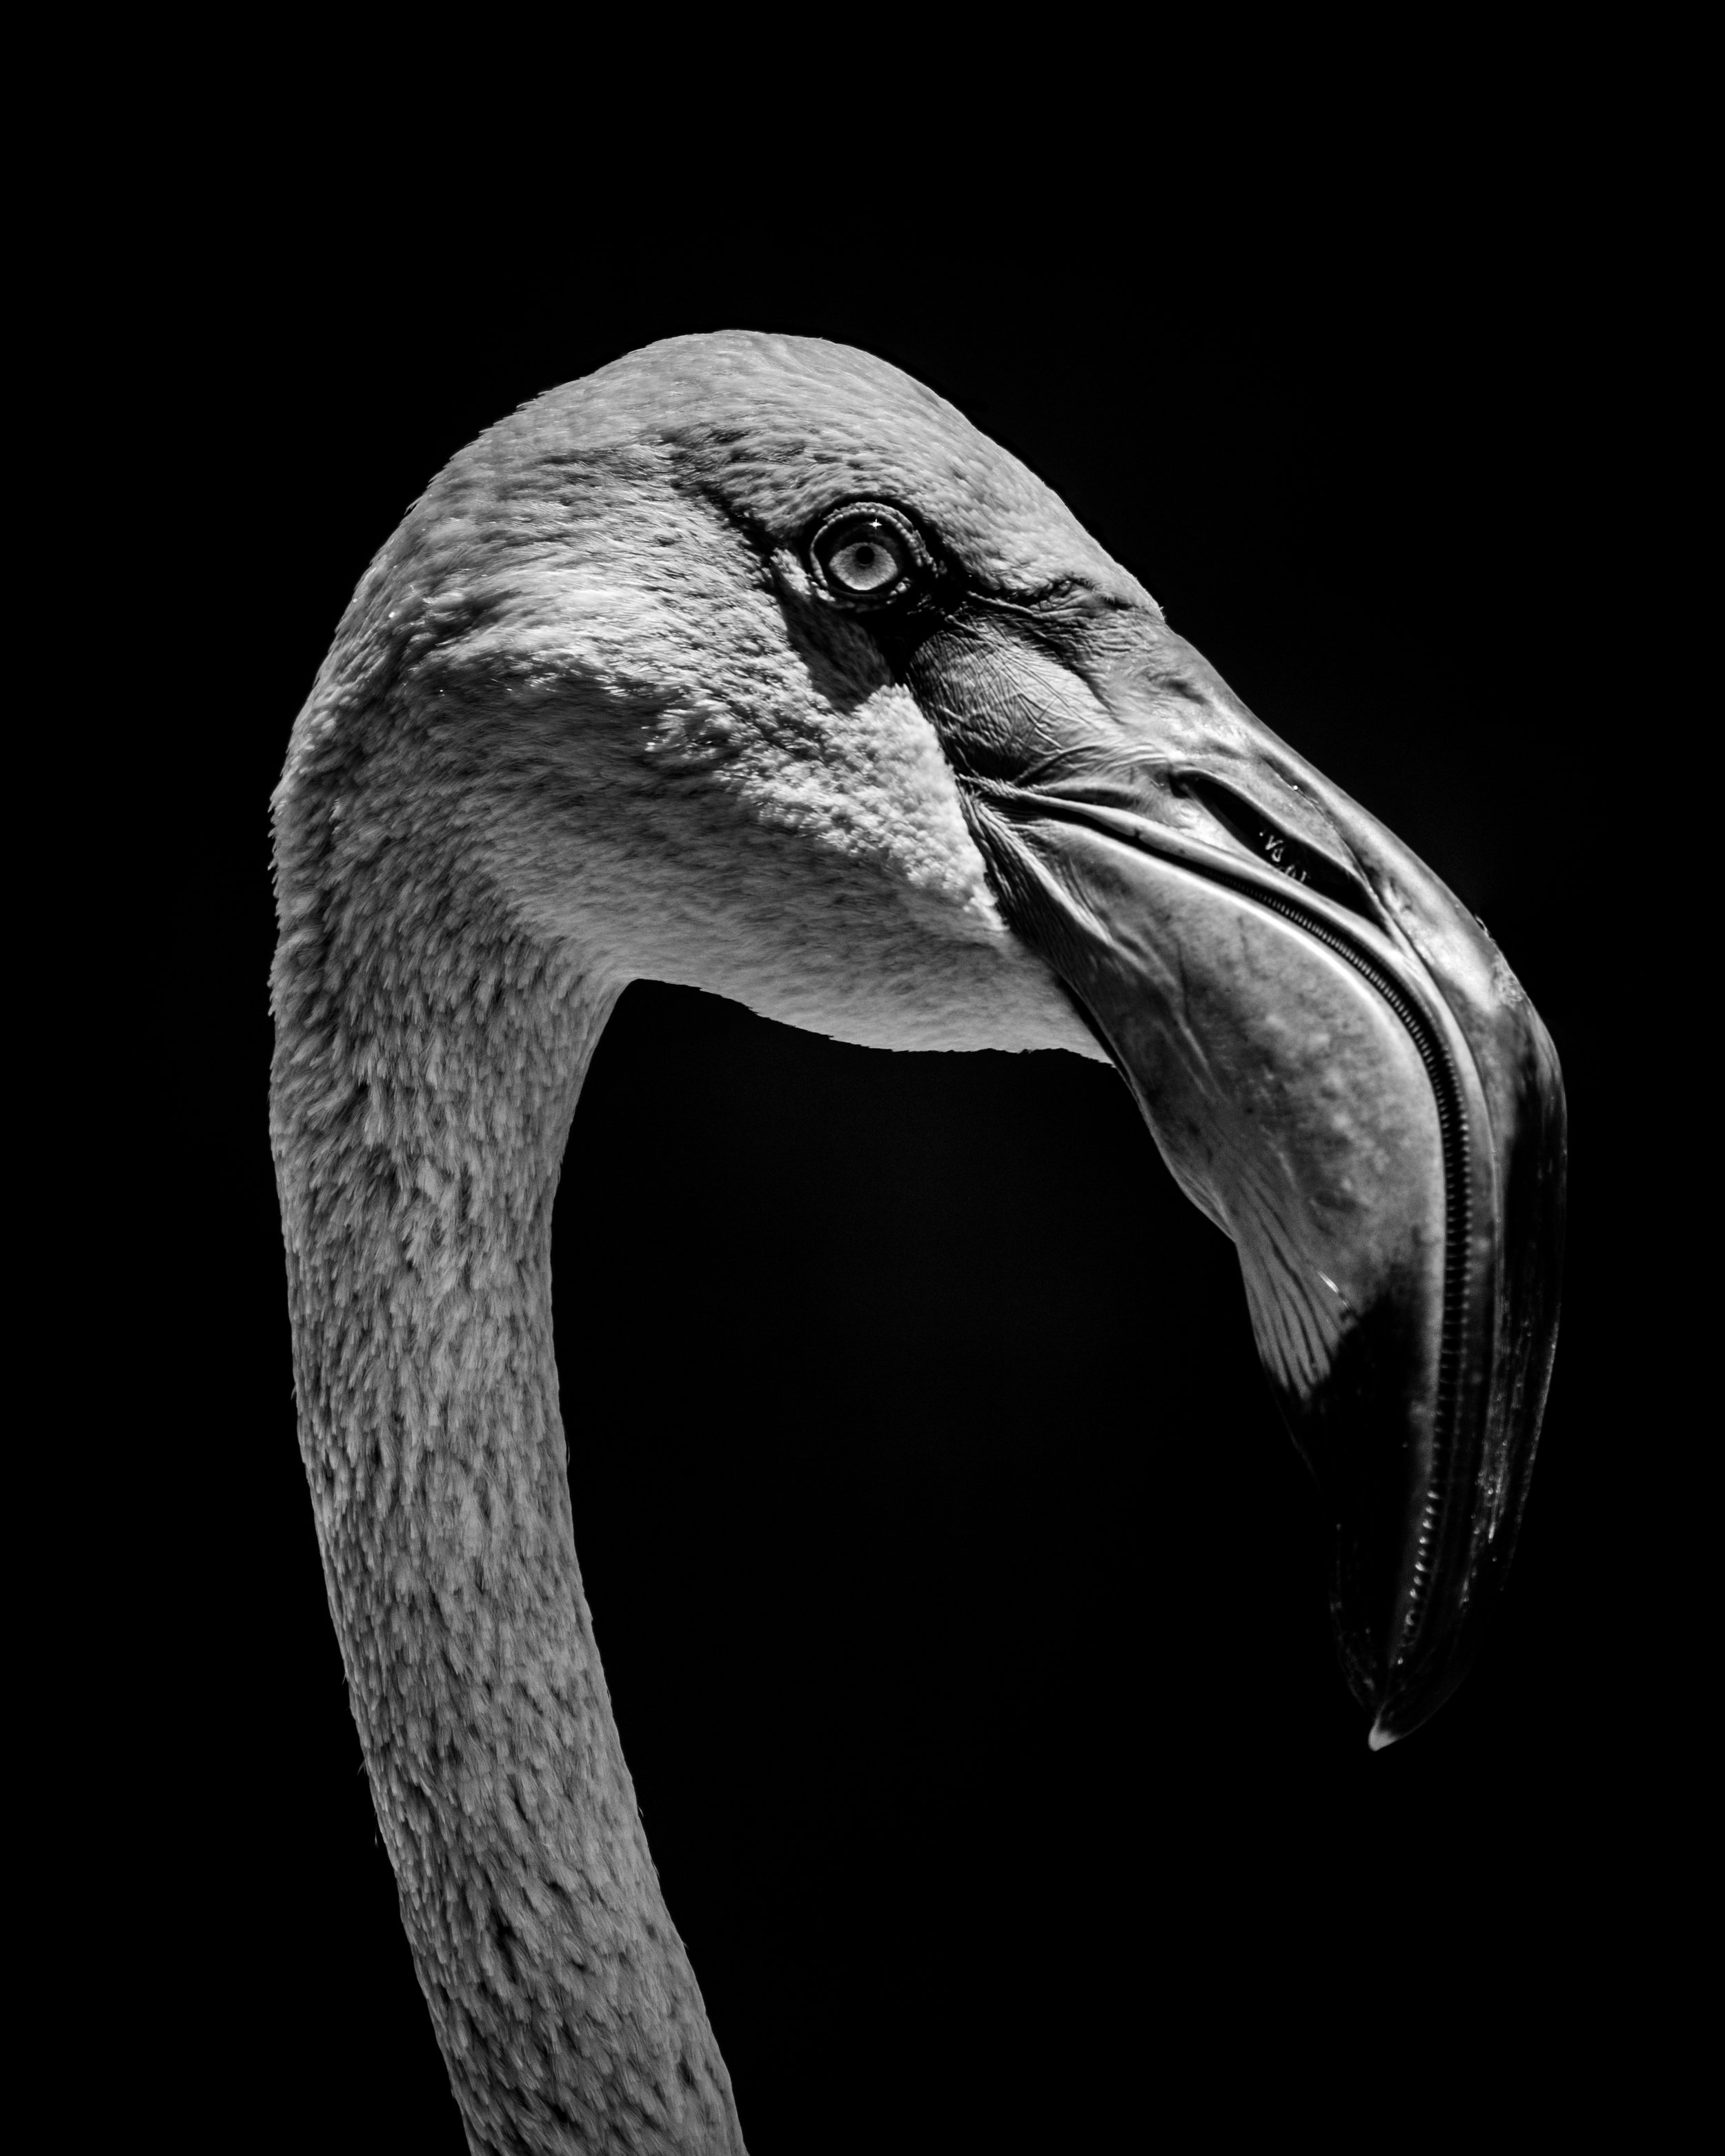 12: Close-up of Chilean flamingo head in mono Verdict: Like the shot, but would like to see it in colour. You also have a ghost line just appearing on the top of the bird's head.